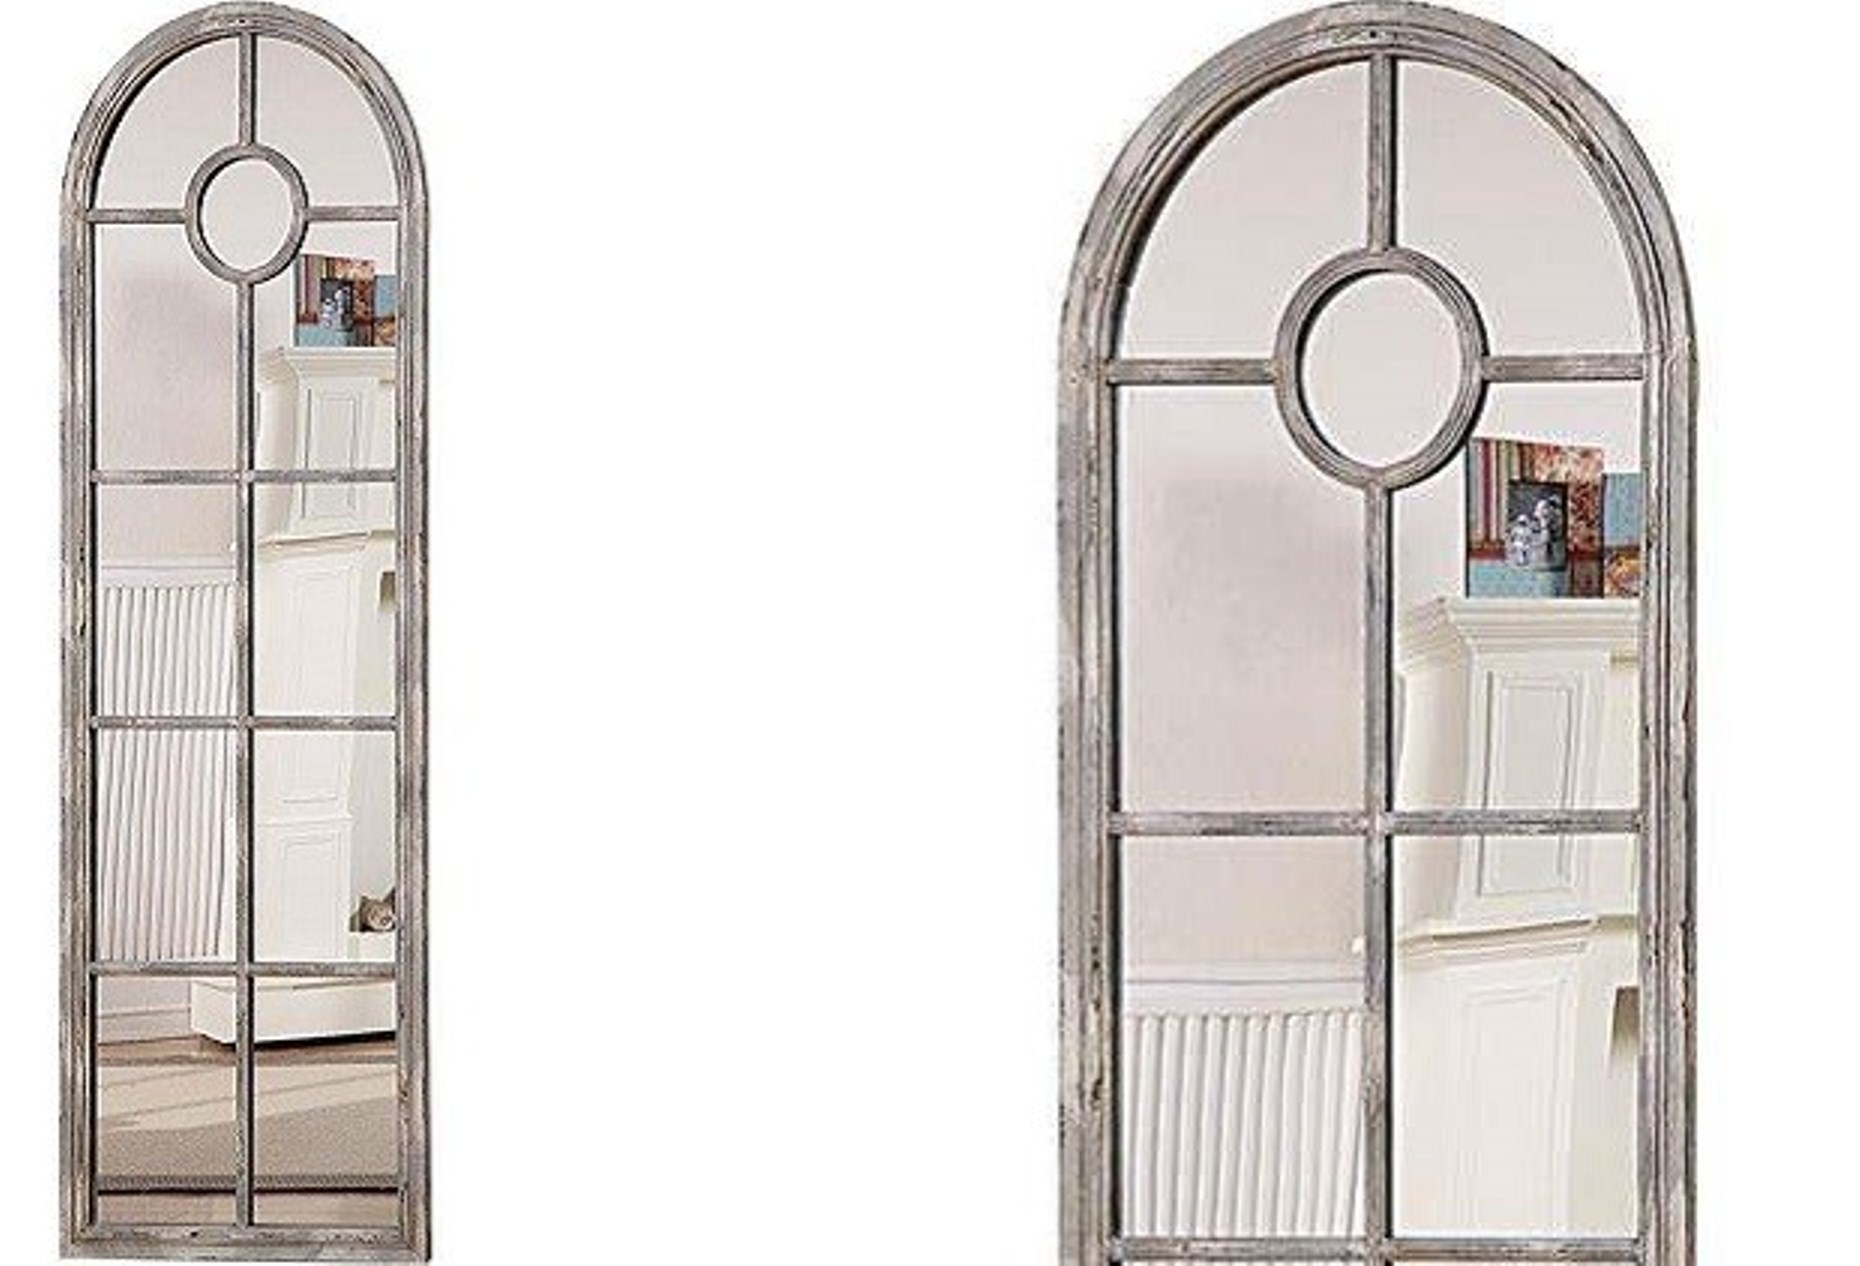 Window Pane Mirror Kohls Home Decor Inspirations Intended For Arched Mirror Window (Image 14 of 15)